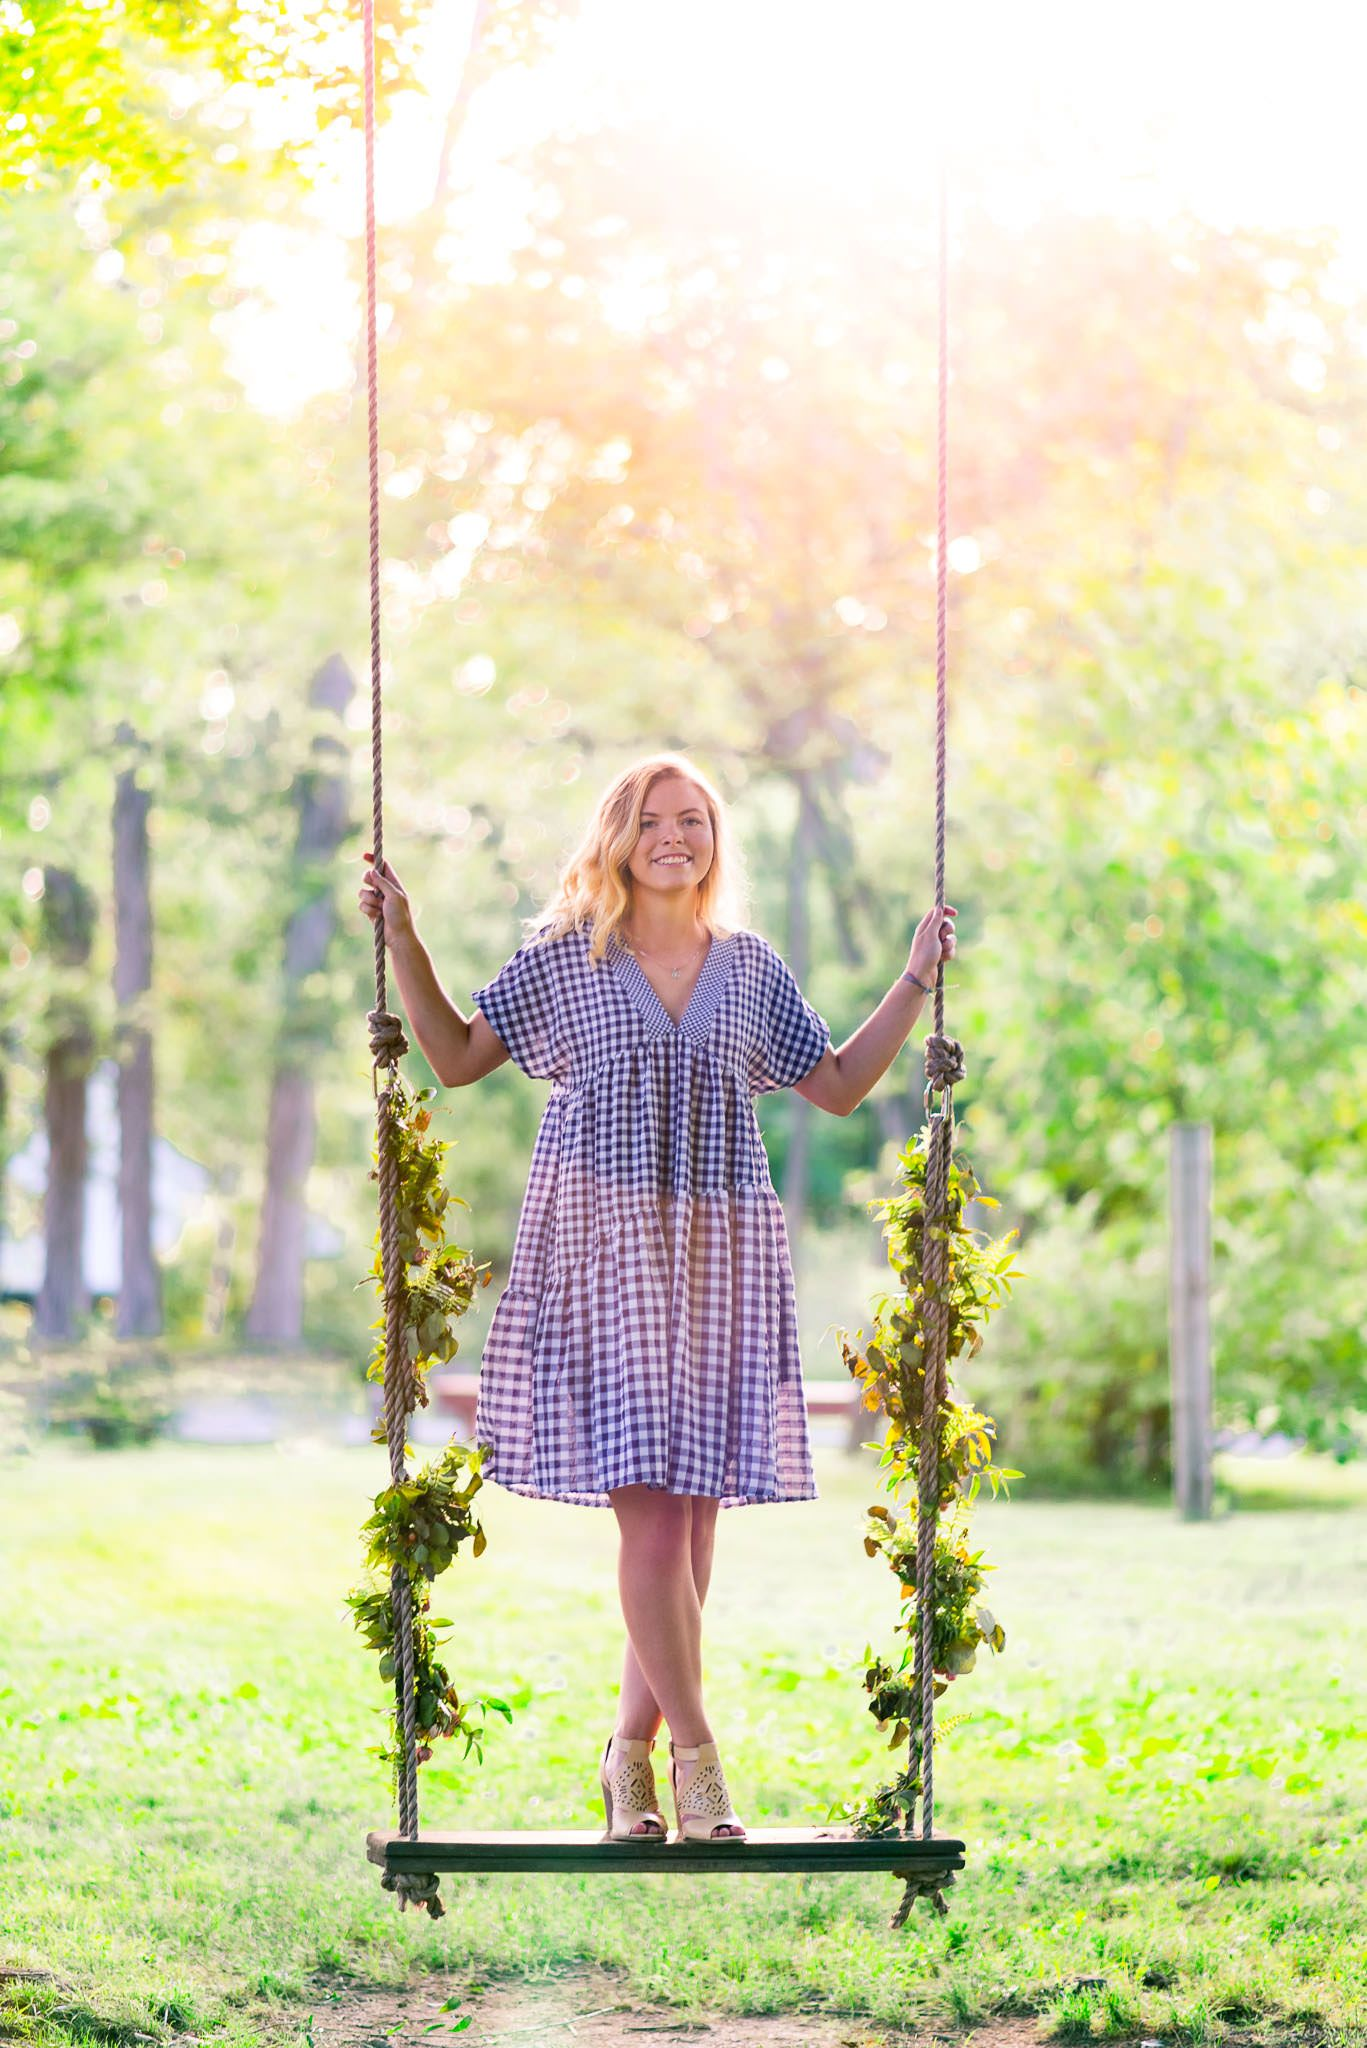 senior picture of a young woman in blue and white dress standing on a swing with floral ropes at sunset